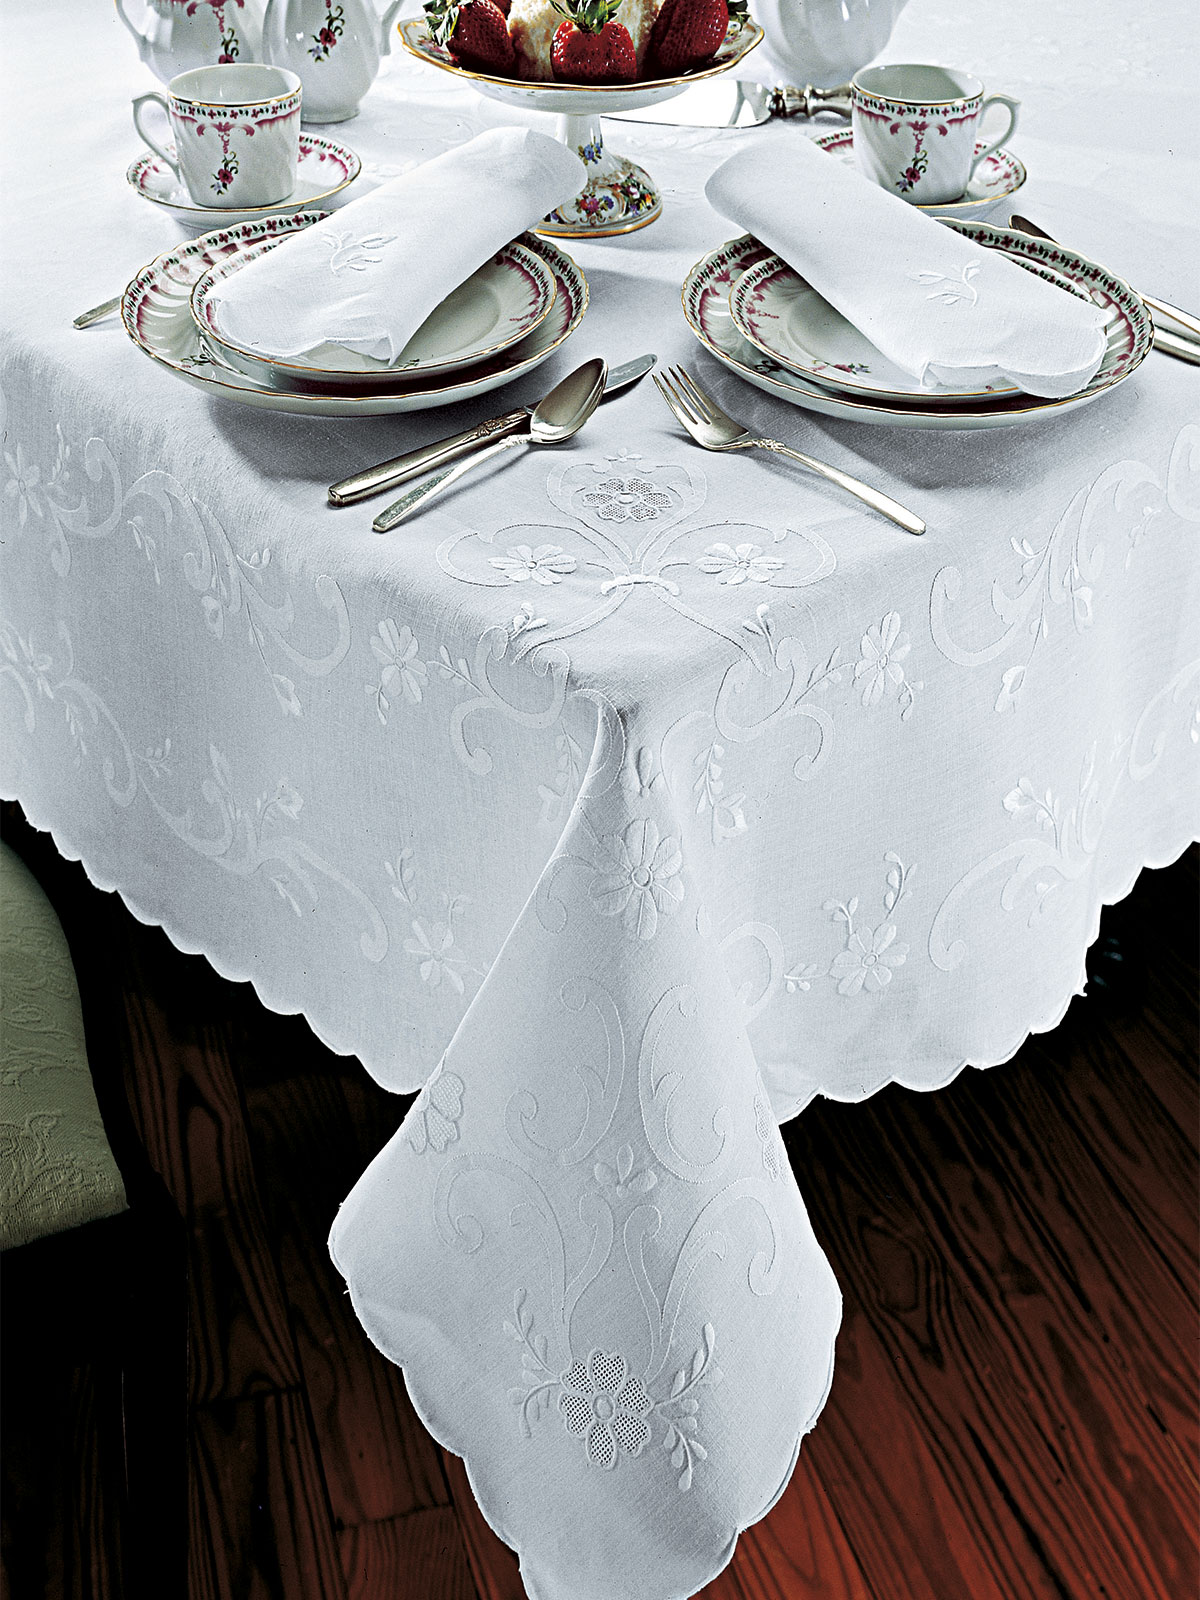 Tips for a Proper Table Setting & Tips for a Proper Table Setting - Schweitzerlinen